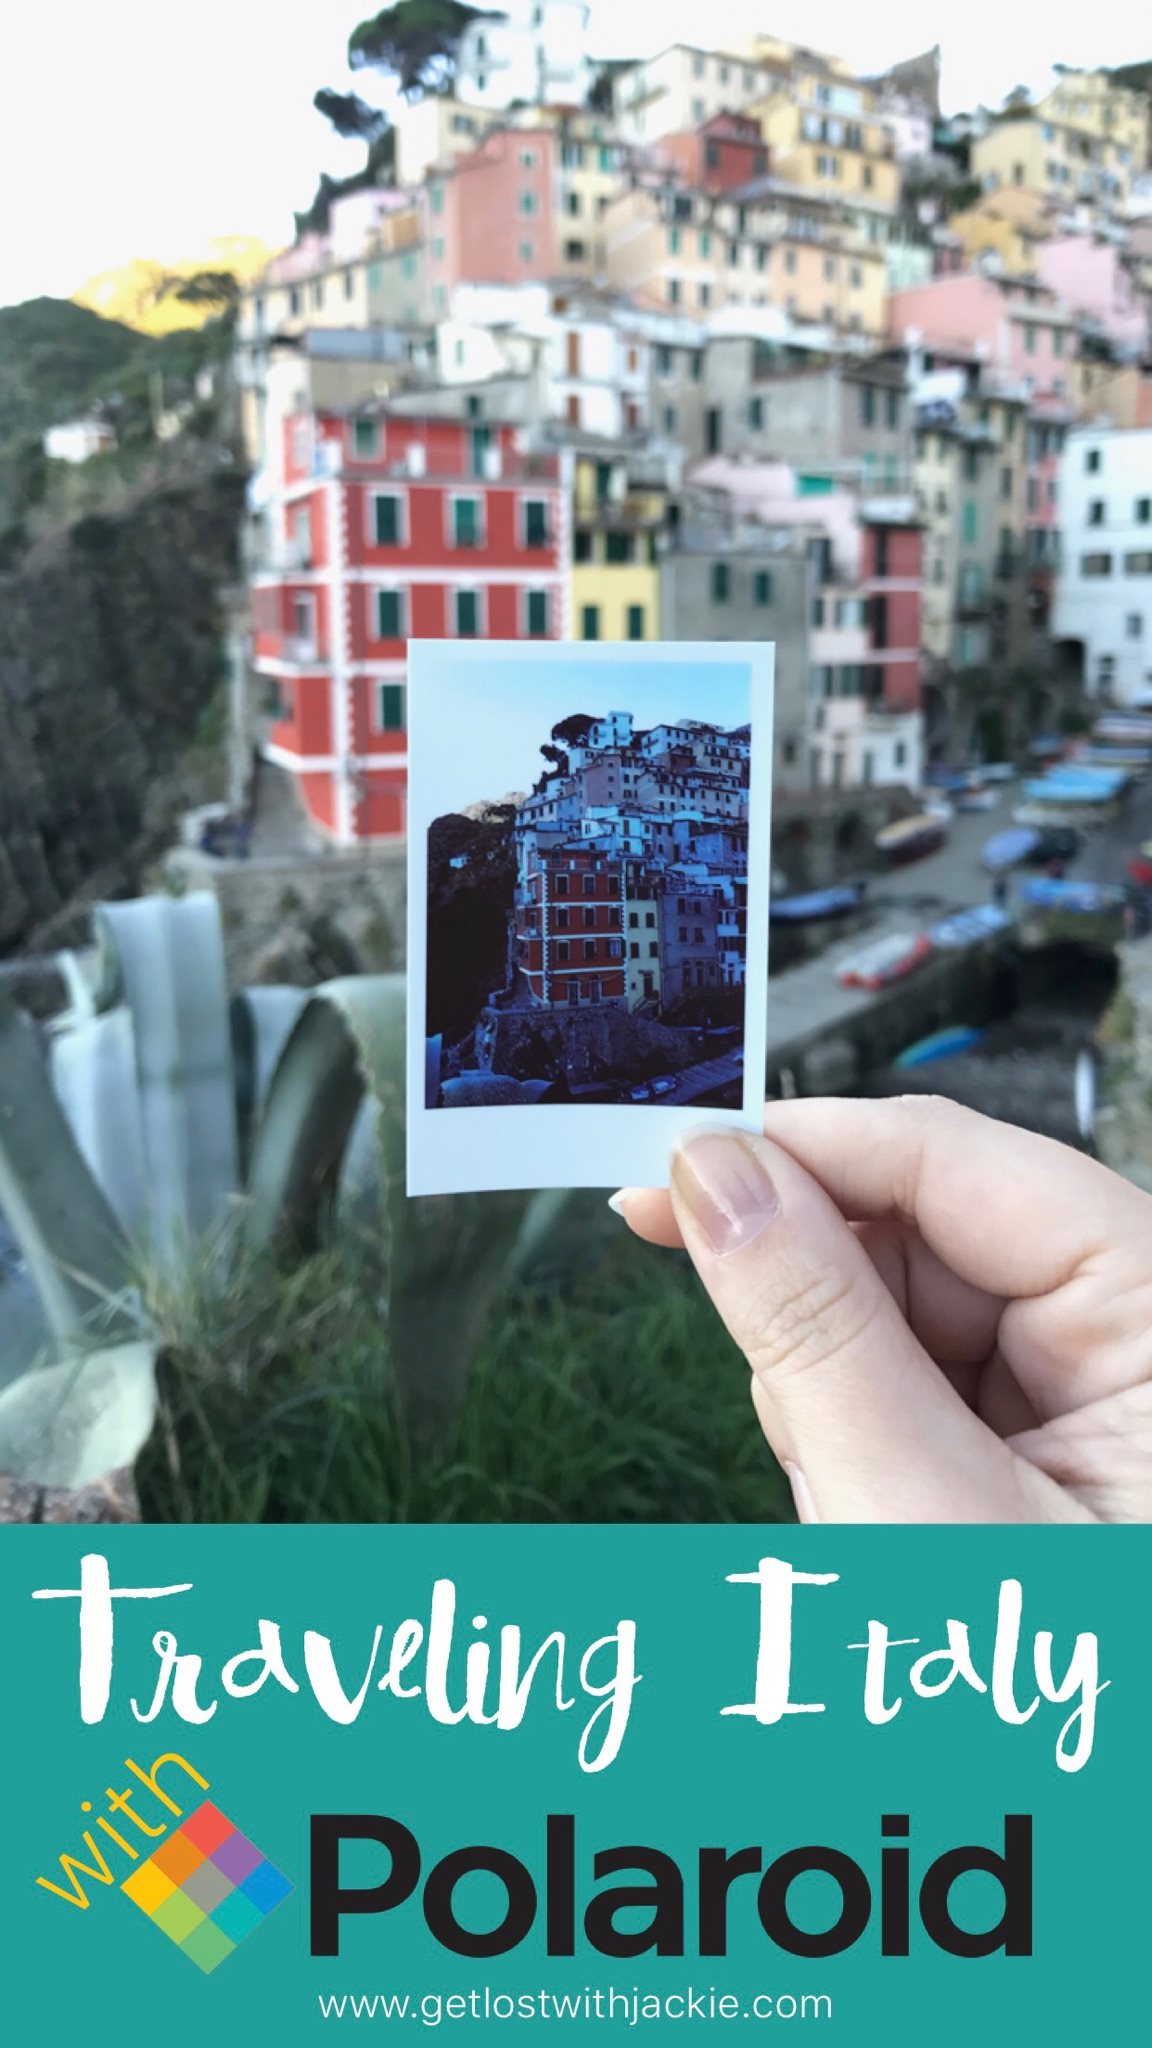 Traveling Italy With Polaroid. A Photo of a Photo Series in Italy. Polaroid Snap Photos in Italy.